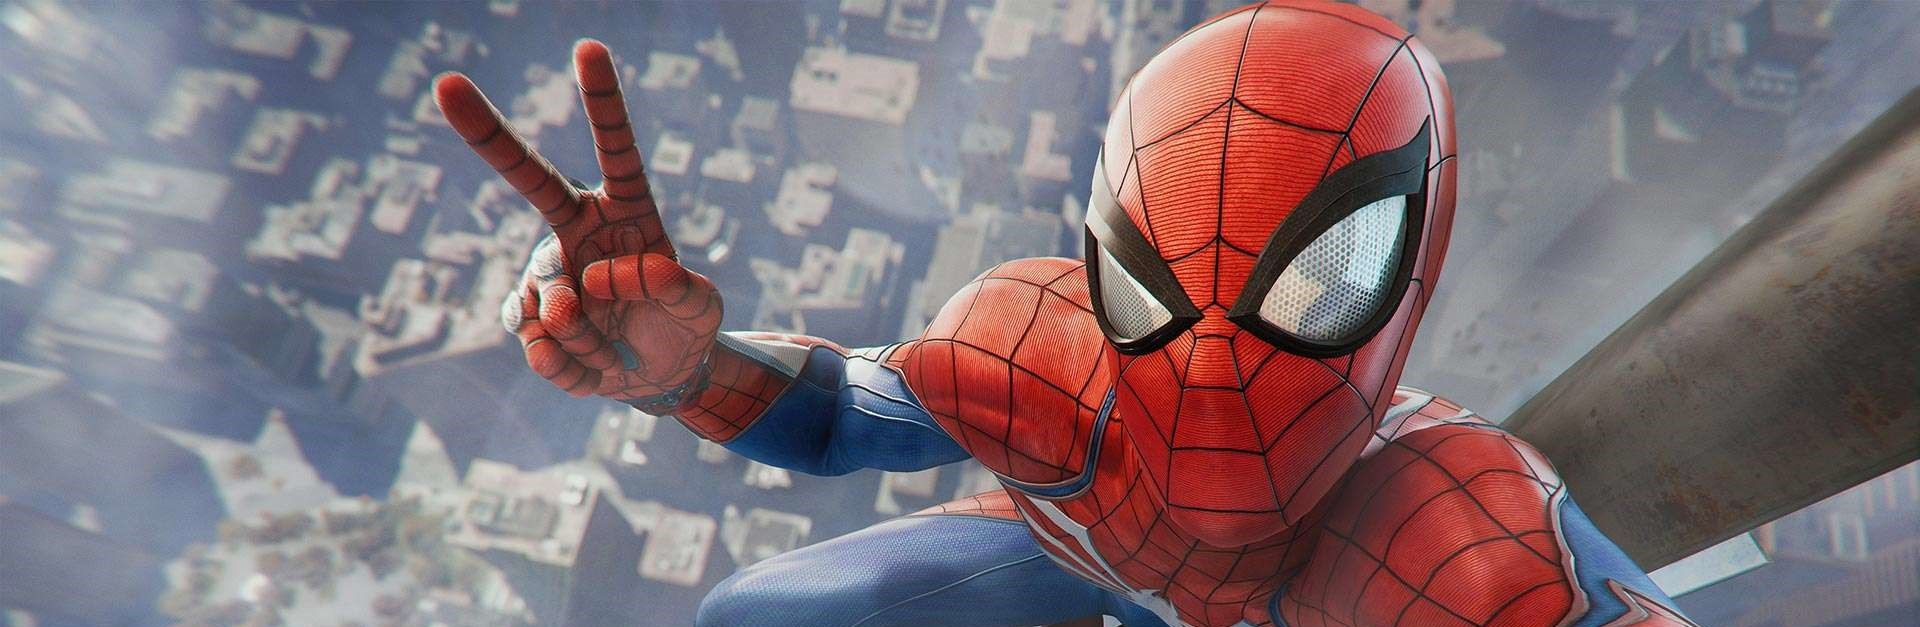 Spidey PS4 peace